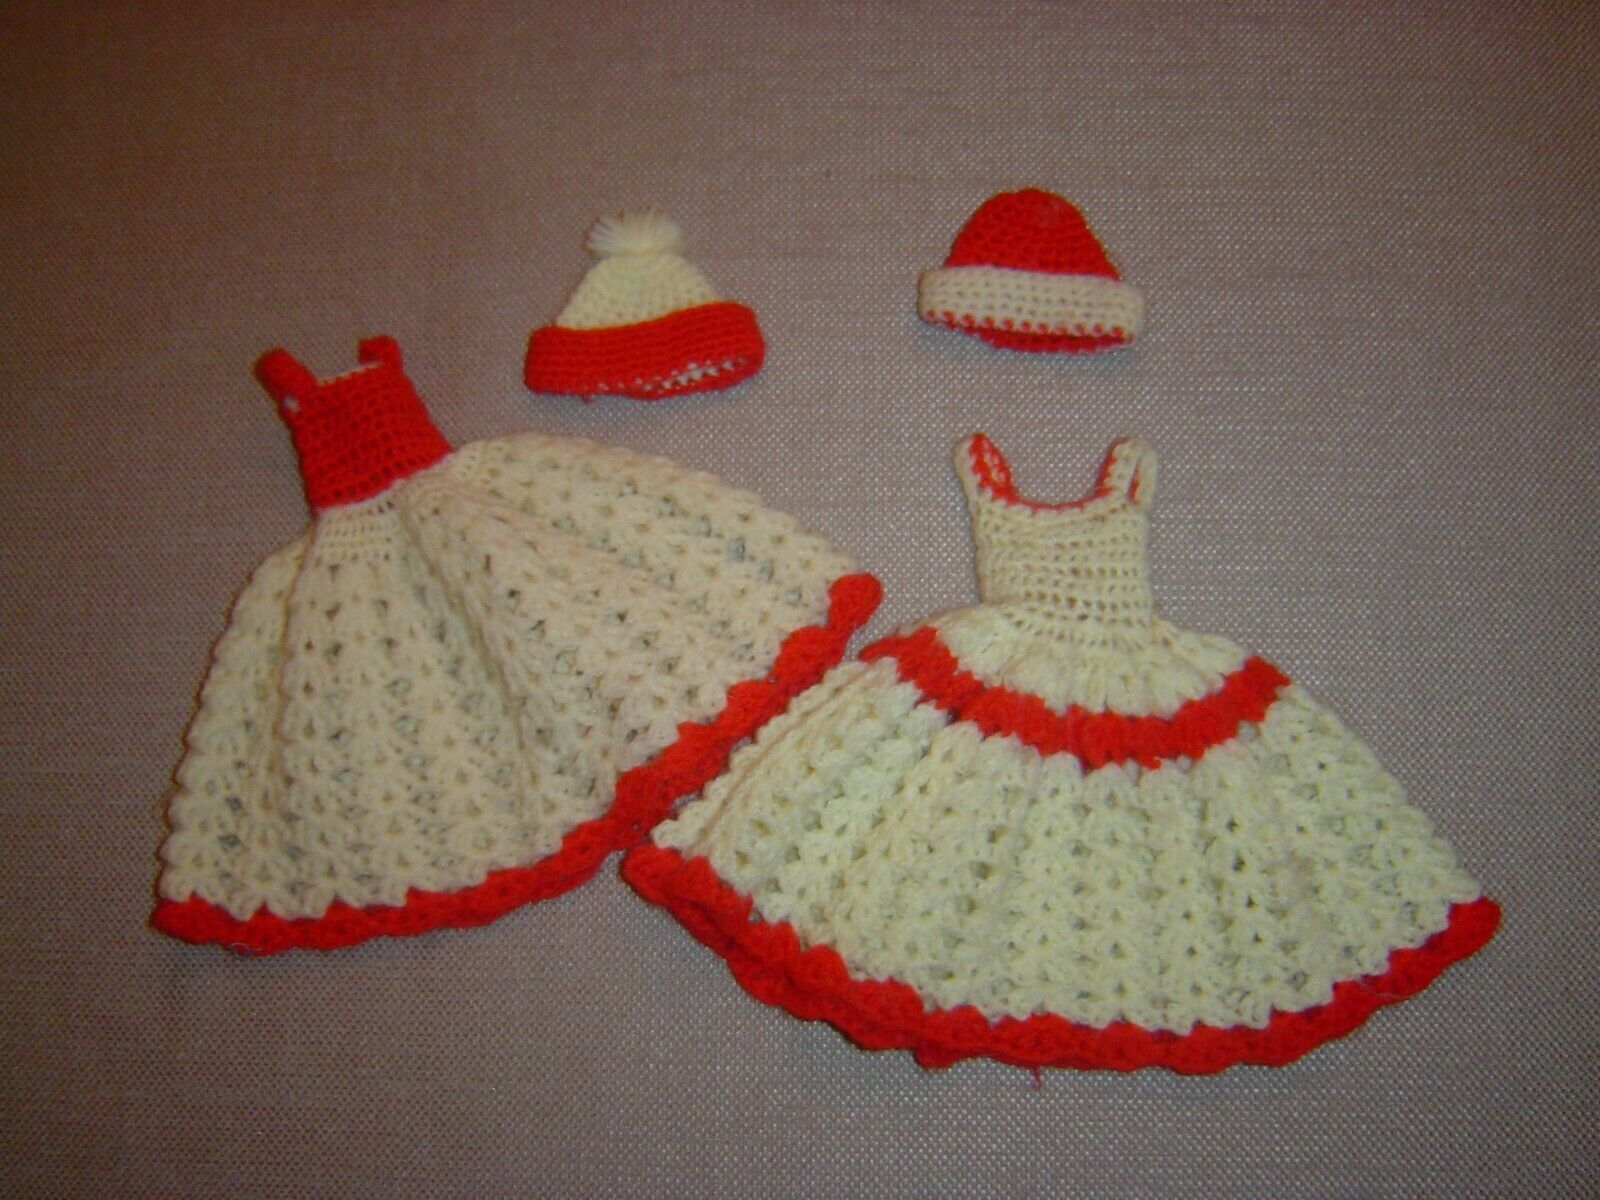 Vintage Barbie - Barbie Two Hand Crocheted Dresses With Caps - $7.99